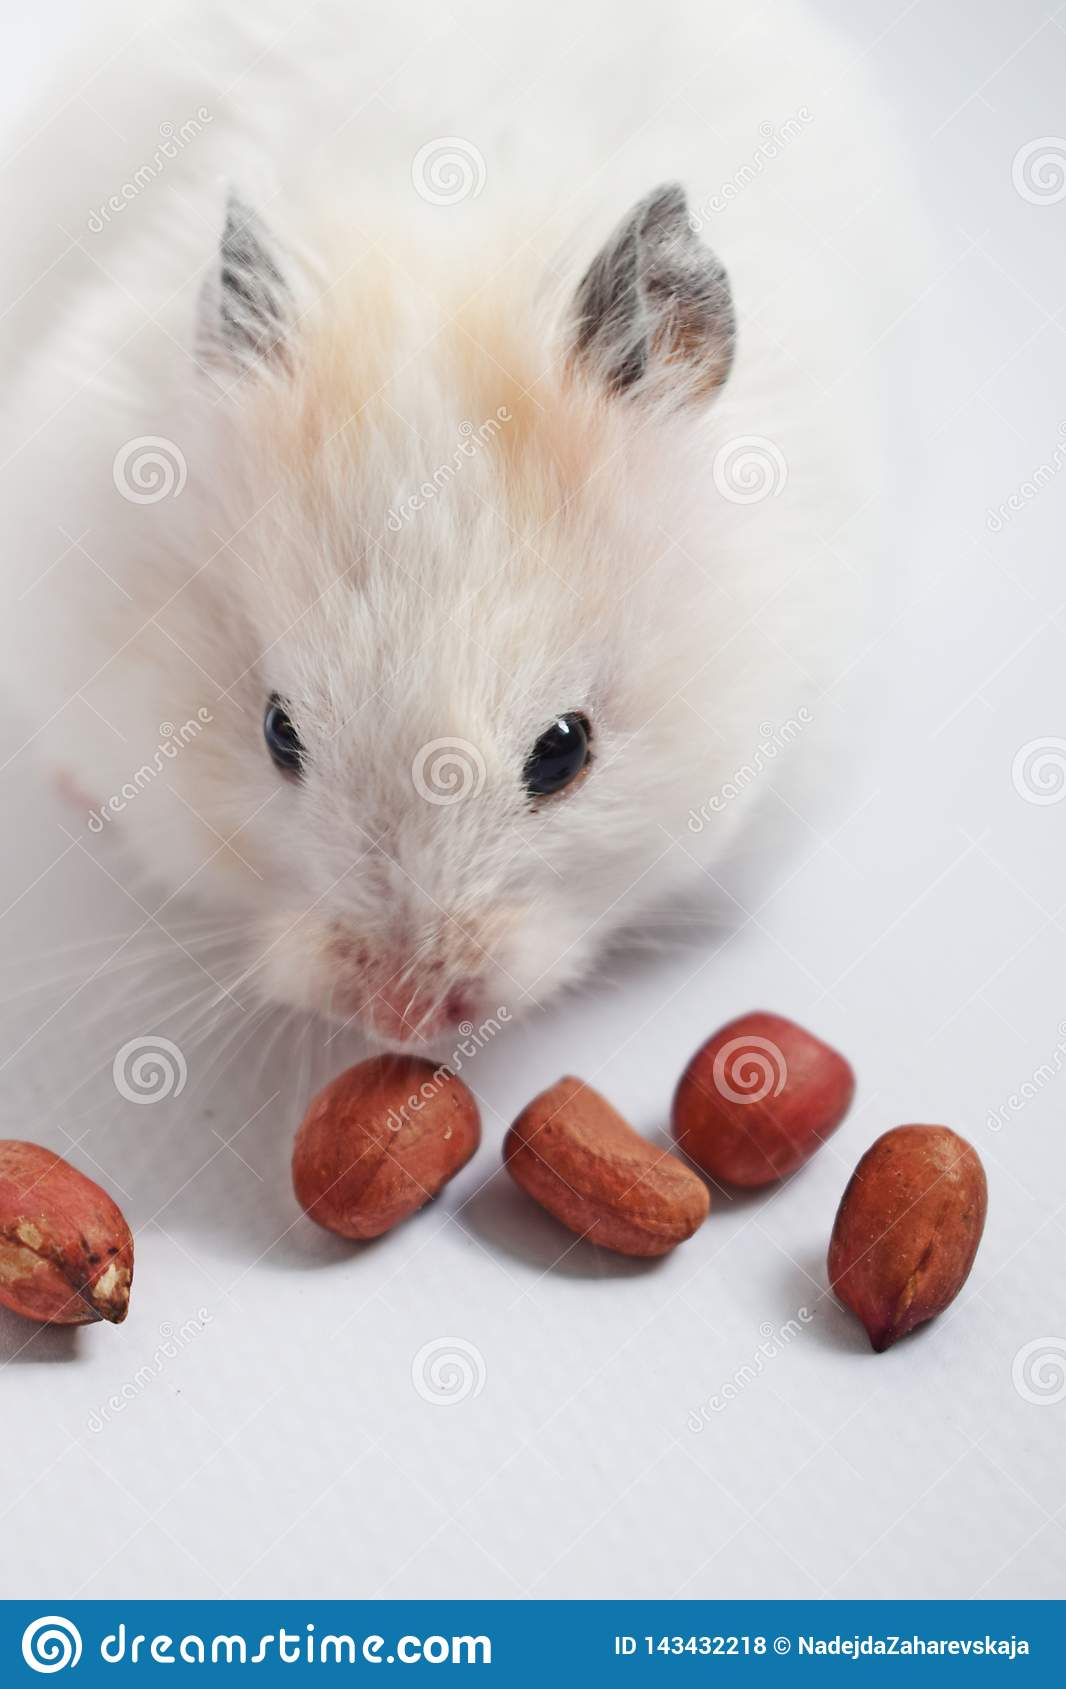 White Syrian hamster  stock photo  Image of adorable - 143432218